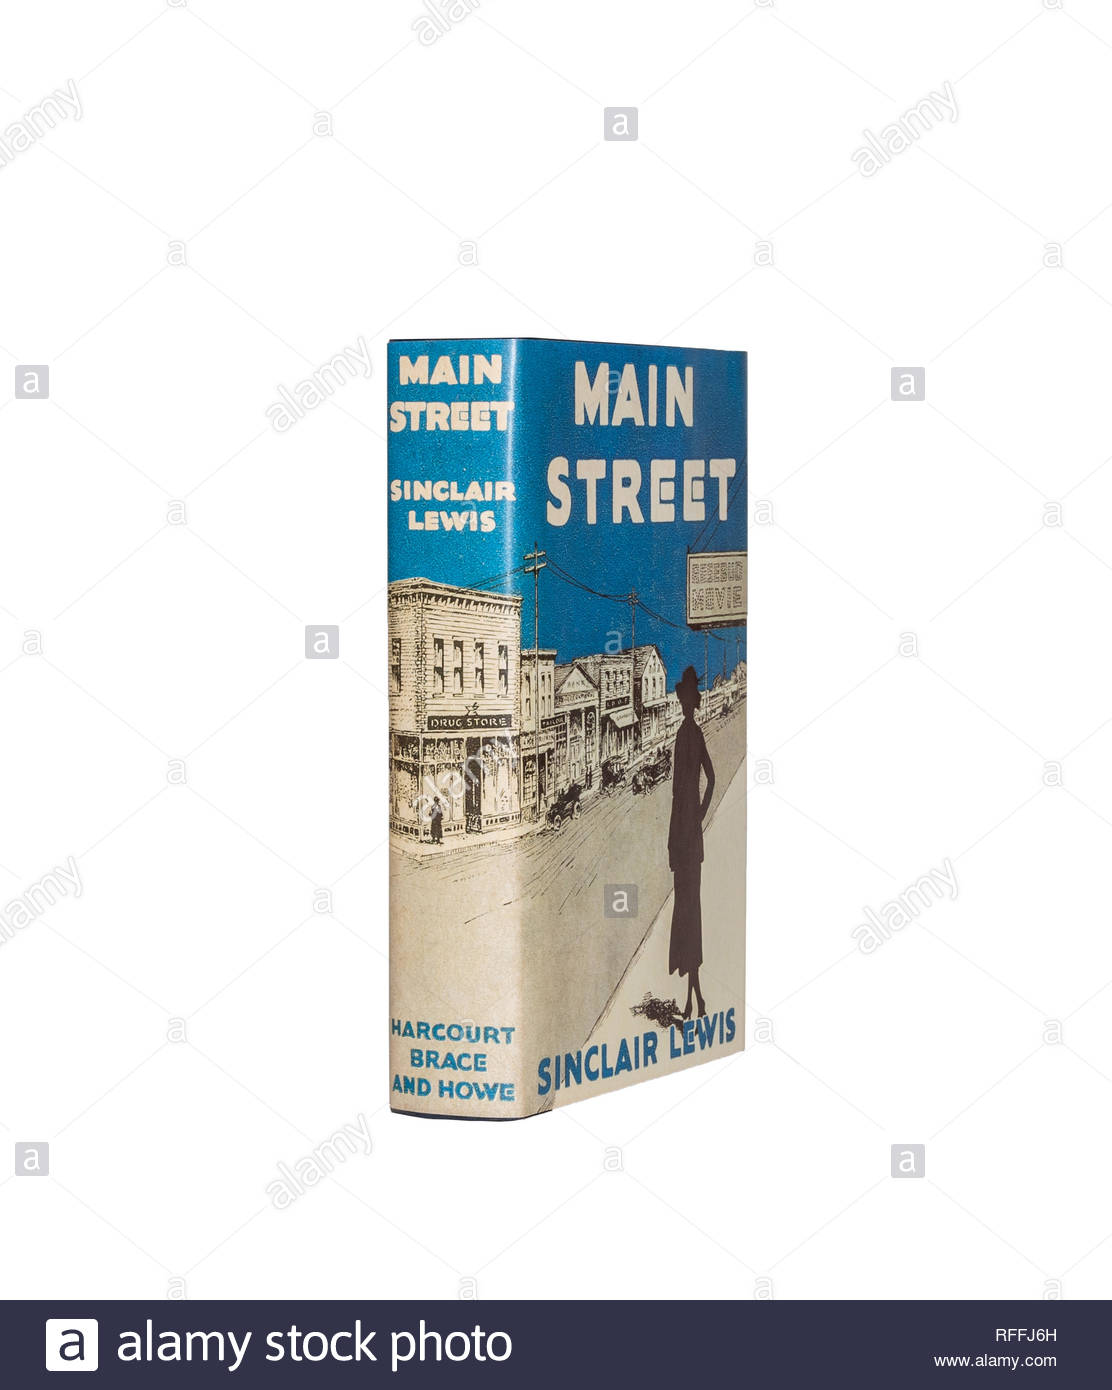 The First Edition Library copy of Sinclair Lewis's 'Main Street', isolated on pure white background. - Stock Image